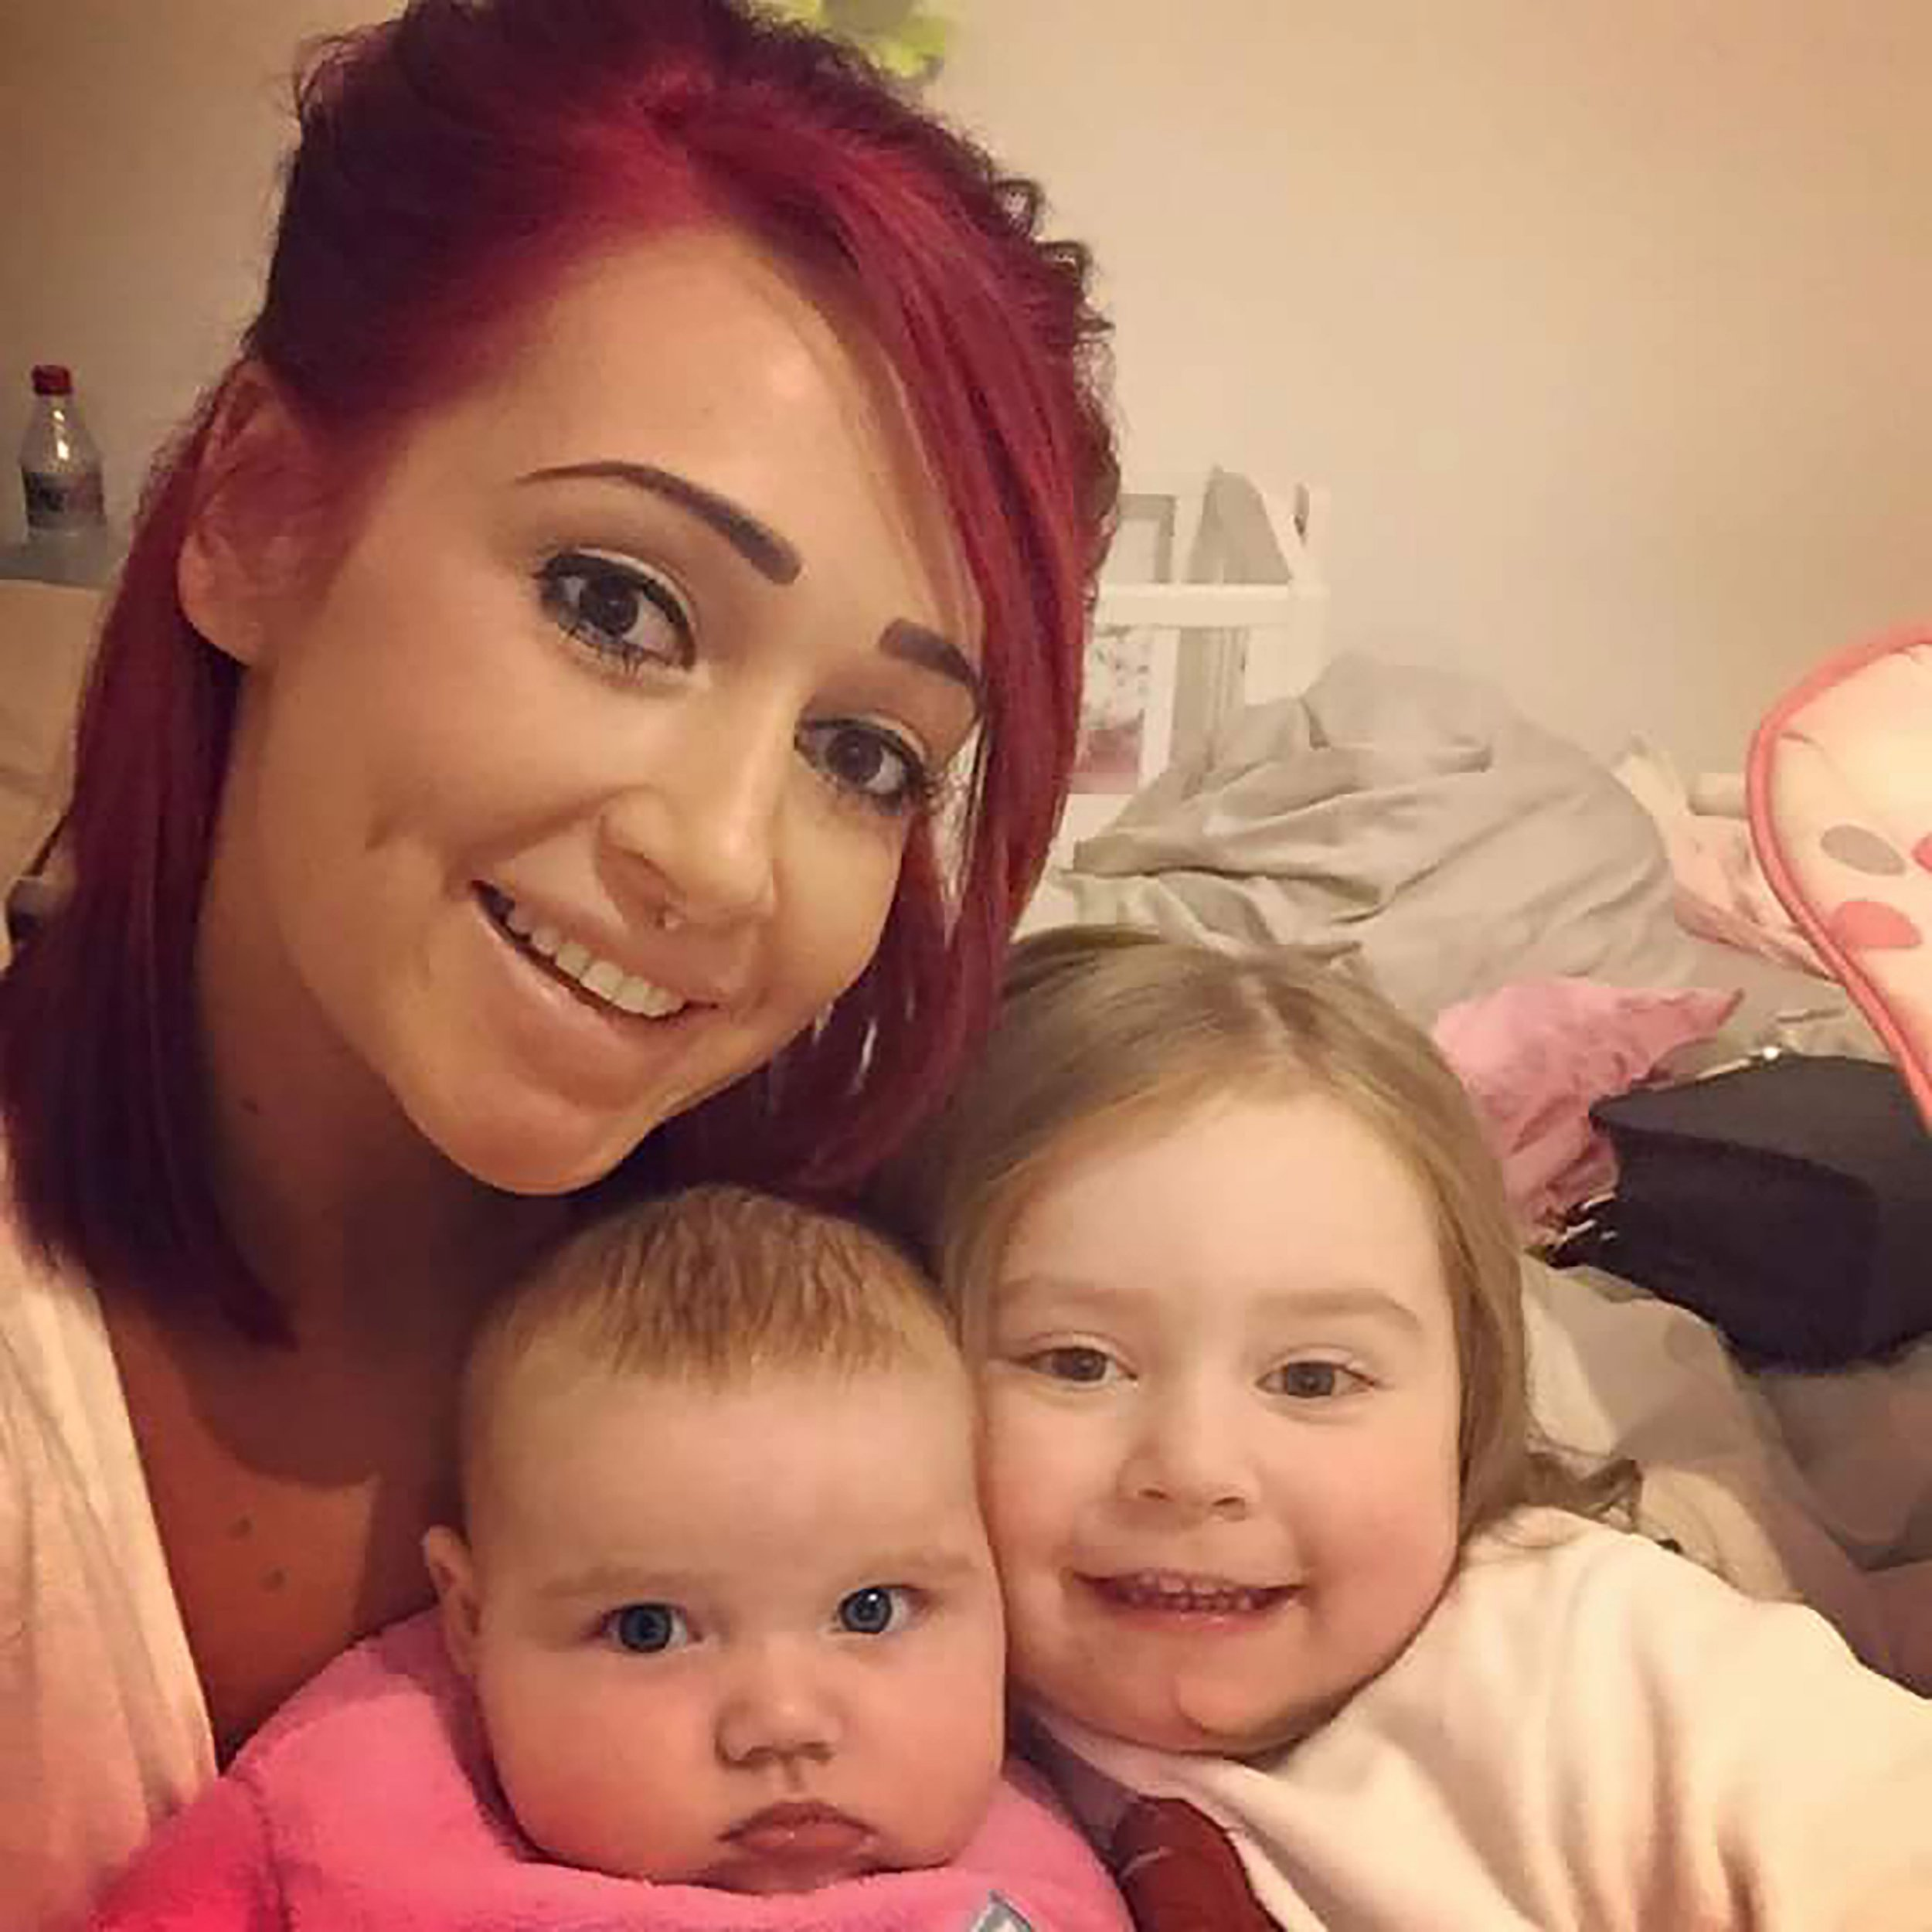 PIC FROM MERCURY PRESS (PICTURED: KIRBY SHEEN WITH HER TWO DAUGHTERS AYMARIS, 2, AND AYVIARNA, 5 MONTHS) A young mum has been told she could be left scarred for life after an e-cig battery exploded in her face as she checked to see if it was working. Kirby Sheen, 24, was left needing plastic surgery after her eye lid was split in two by the mouth piece of the device, which propelled towards her after the battery exploded. The mother-of-two says she was horrified as she looked in the mirror and realised her eye was dripping with blood and battery acid on her forehead. Kirby, who lives with her partner Adam Burgess, a construction worker, and their two children Aymaris, two, and Ayviarna, five months, was rushed to A&E but was immediately referred to an eye specialist at Manchester Royal Infirmary. The following day Kirby had to undergo two hours of plastic surgery and has now been told she could be left permanently scarred. Kirby is now recovering from the ordeal, which happened on Wednesday, but says she will need another operation to clean the wound and remove the stitches. SEE MERCURY COPY